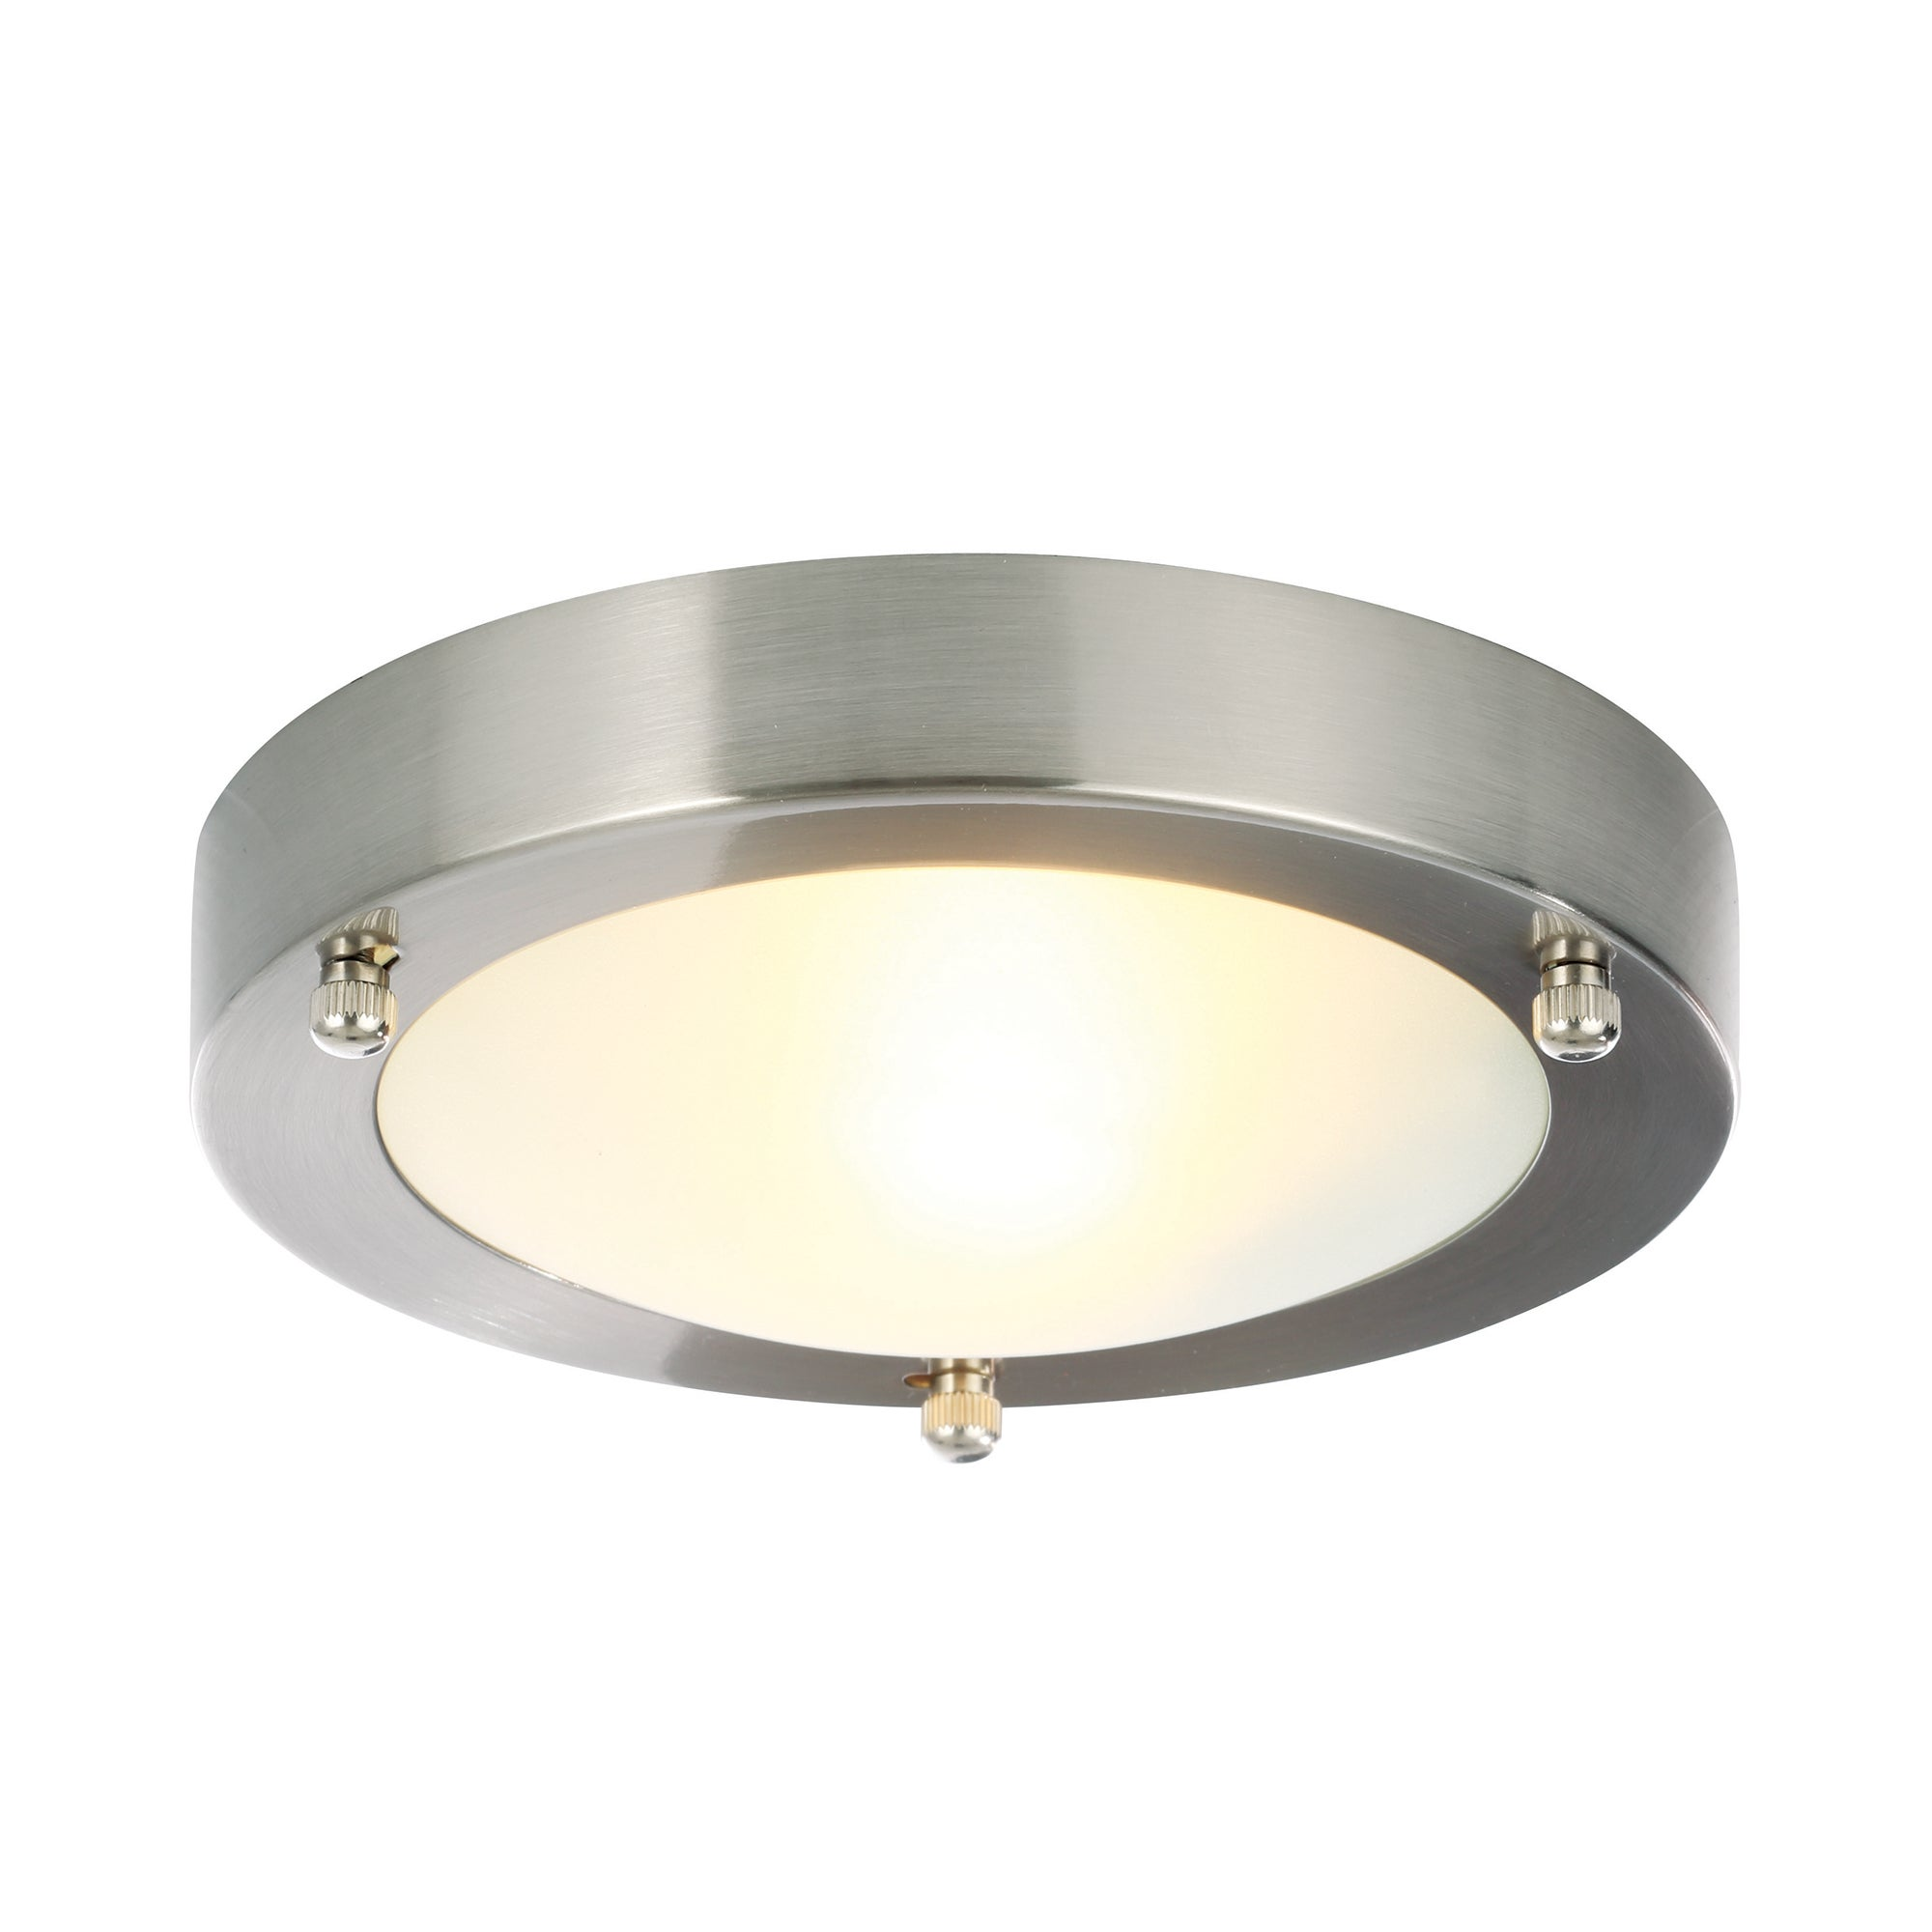 Image of Canis Small Flush Ceiling Fitting Satin Nickel